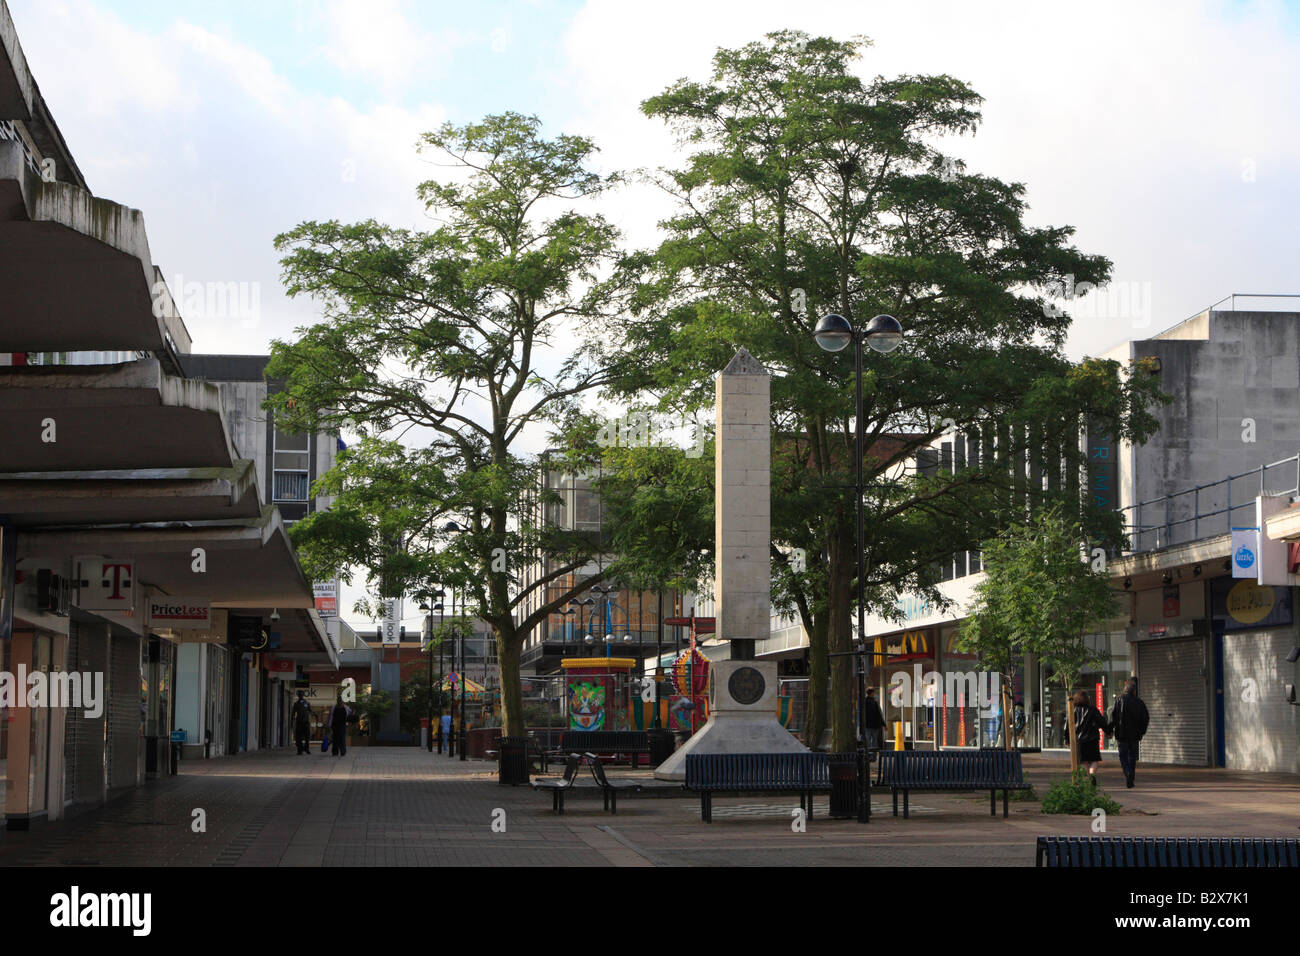 Harlow Town Centre High Street Shops Harlow Essex England Uk Gb Stock Photo Royalty Free Image